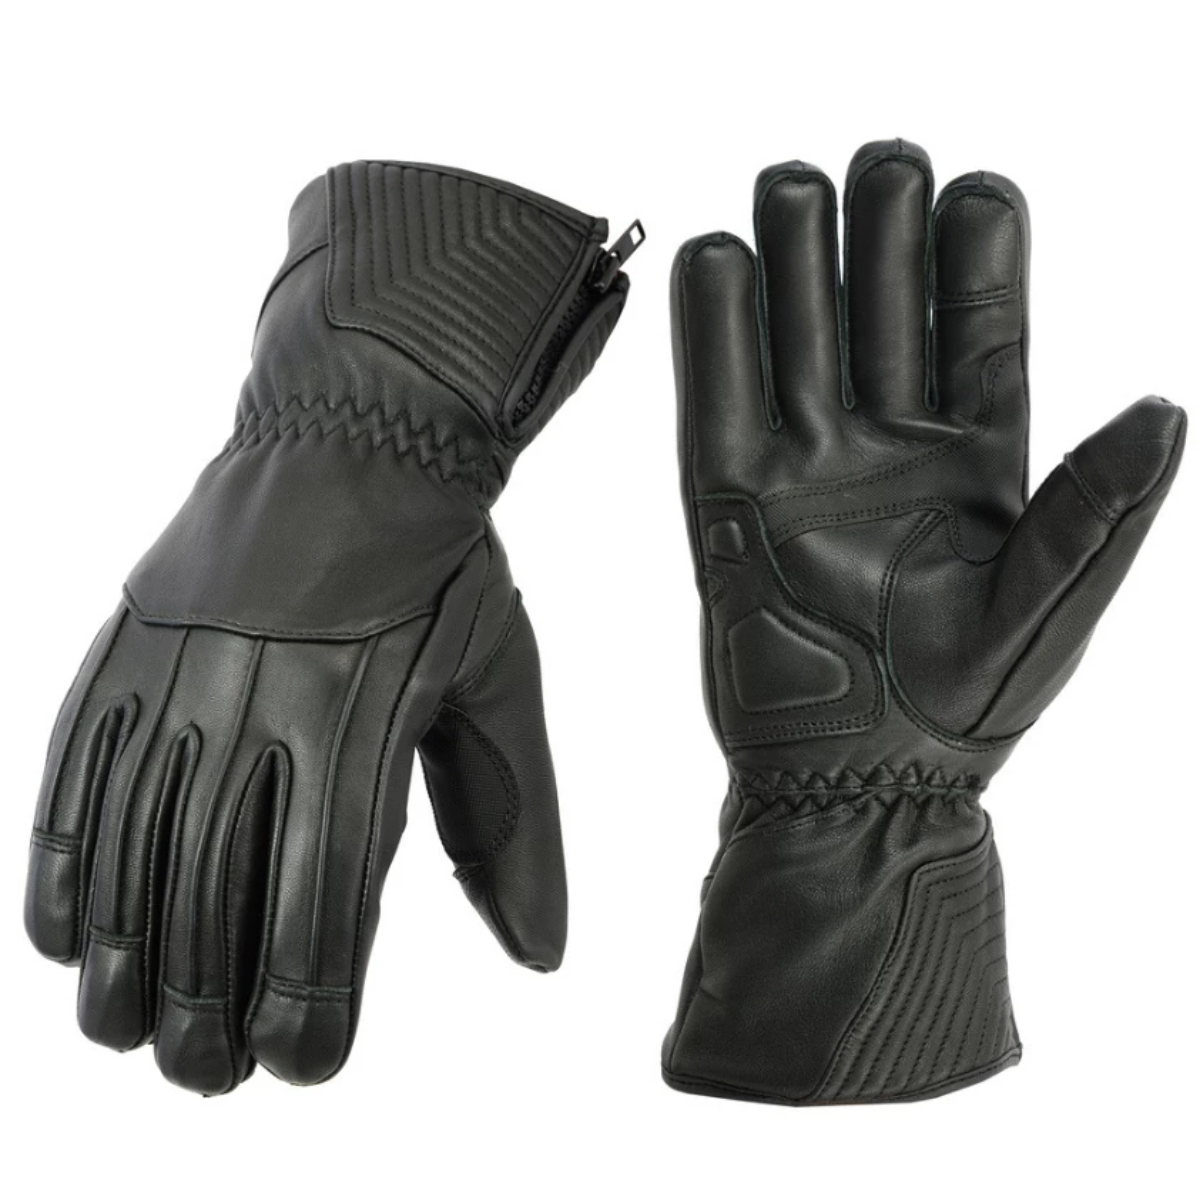 Daniel Smart Insulated Driving Gloves